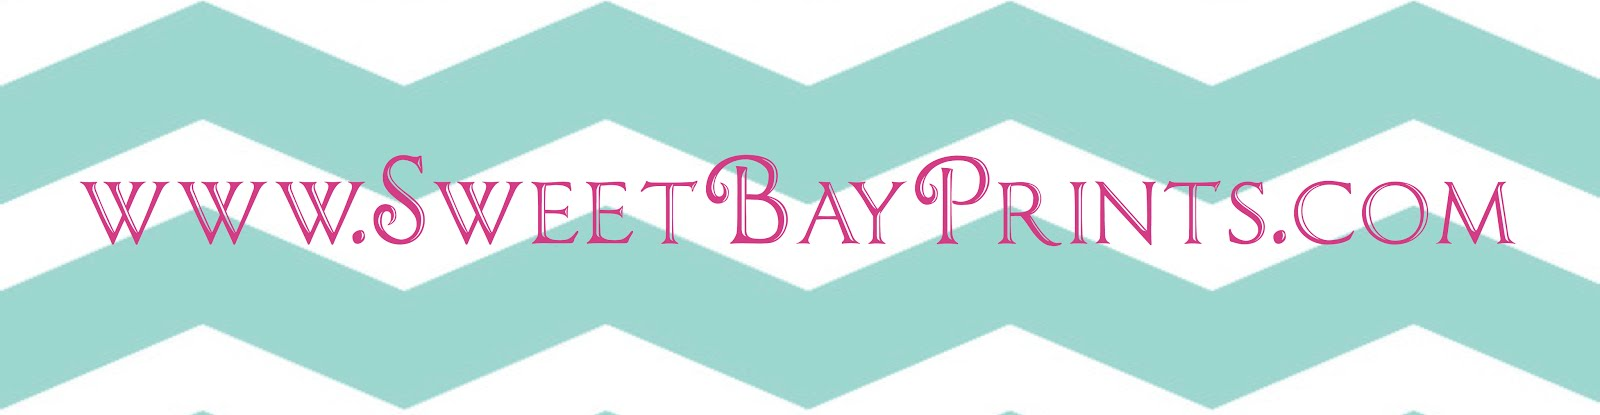 Sweet Bay Prints